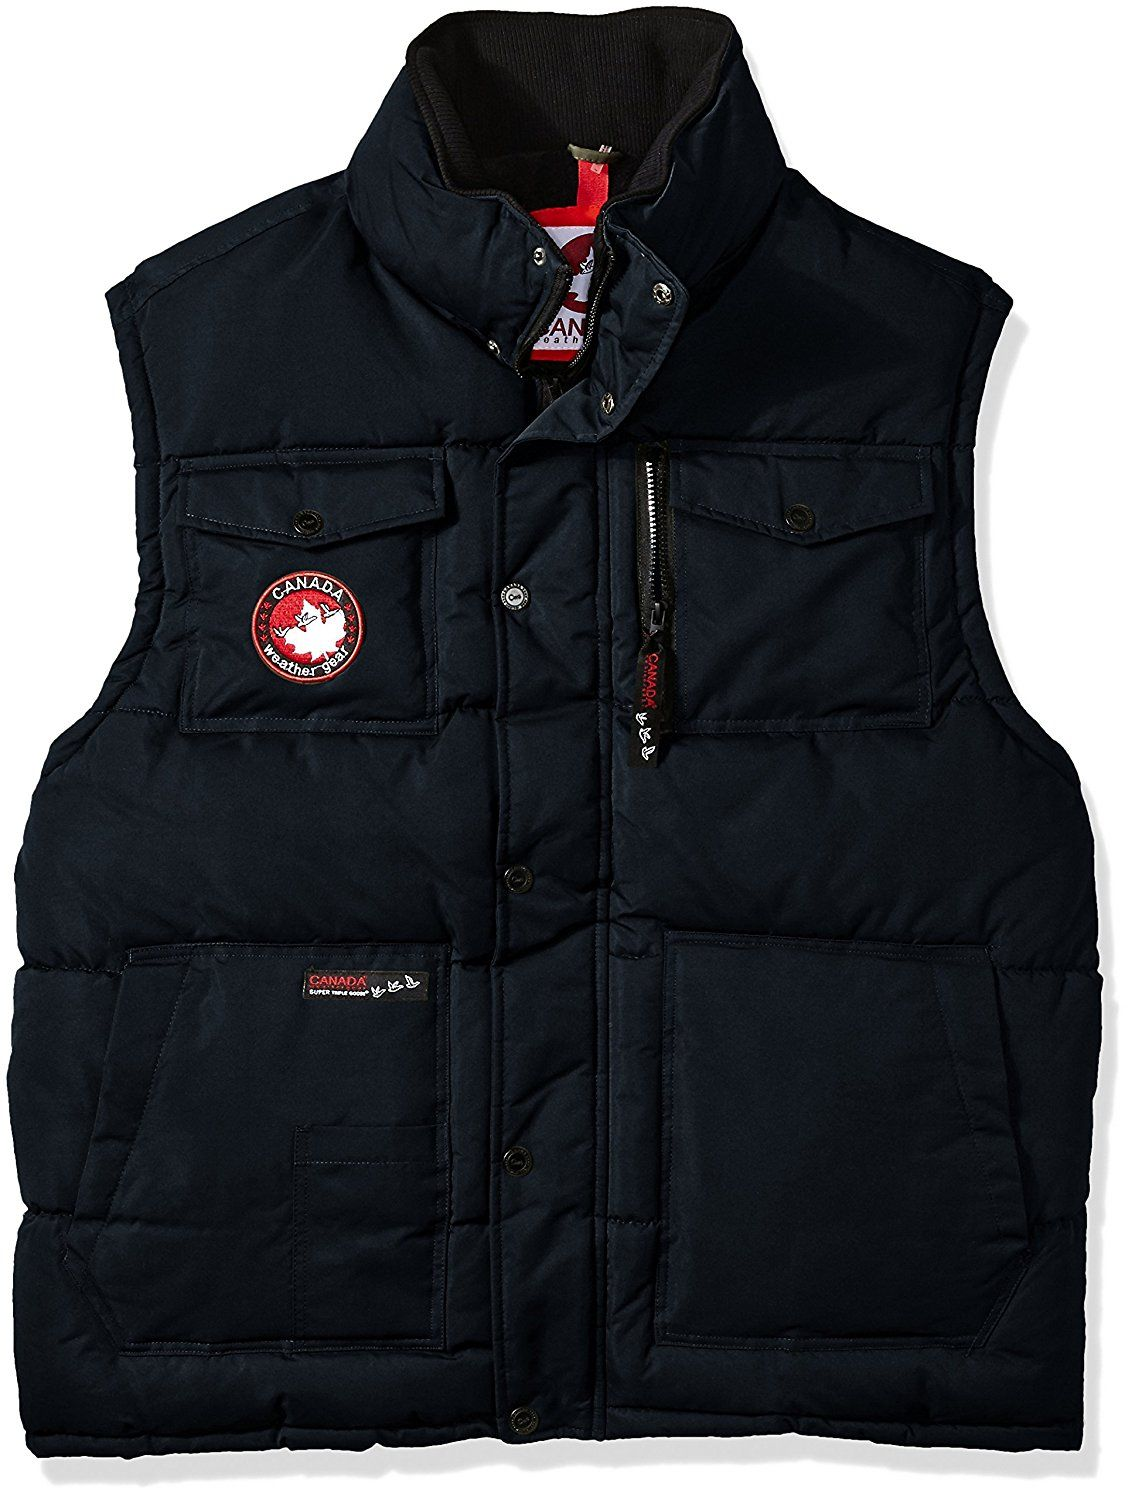 Canada Weather Gear Men 39 S Big And Tall Bubble Vest Sizes Black 5xl At Amazon Men S Clothing Store Mens Vest Outerwear Bubble Vest Outerwear Vest